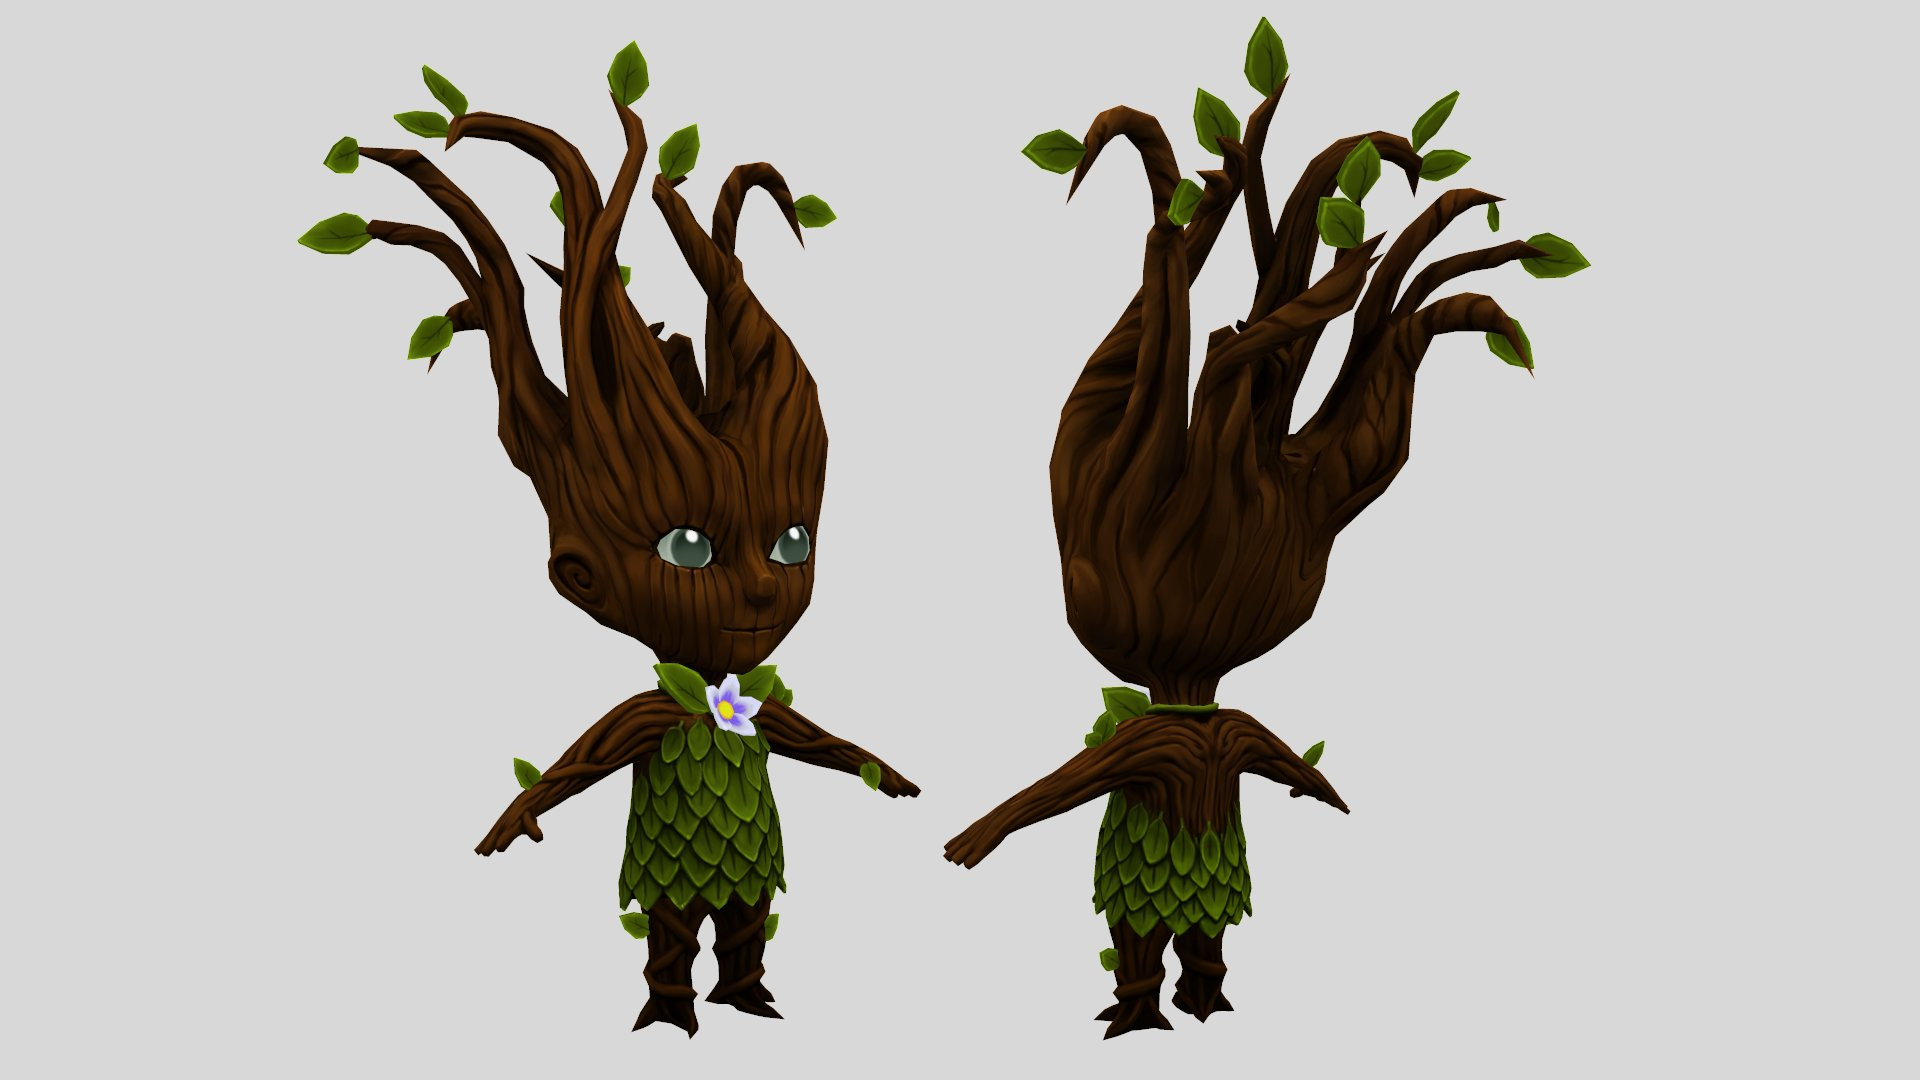 Dryad Tree, 5000 tris, 512x512 diffuse map